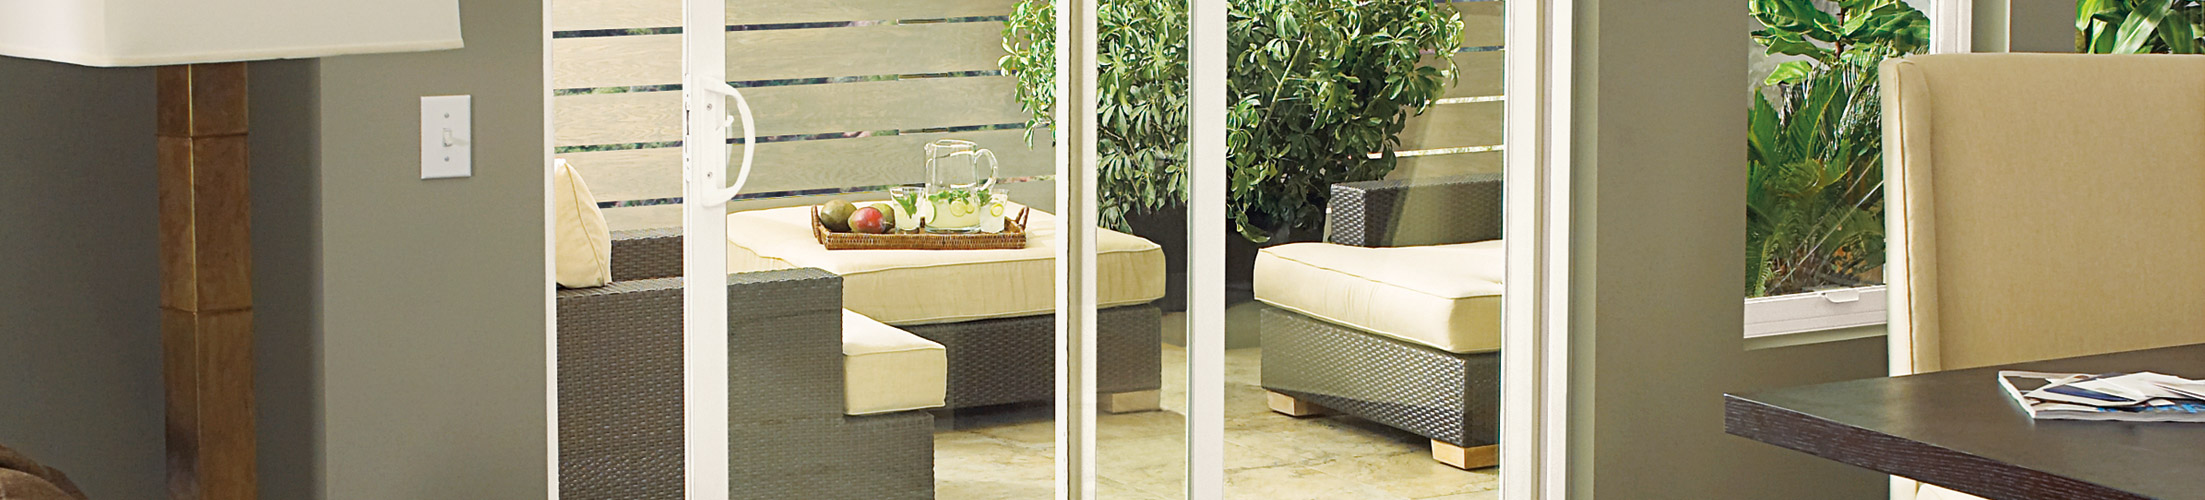 Integrity fiberglass patio doors for Fiberglass patio doors